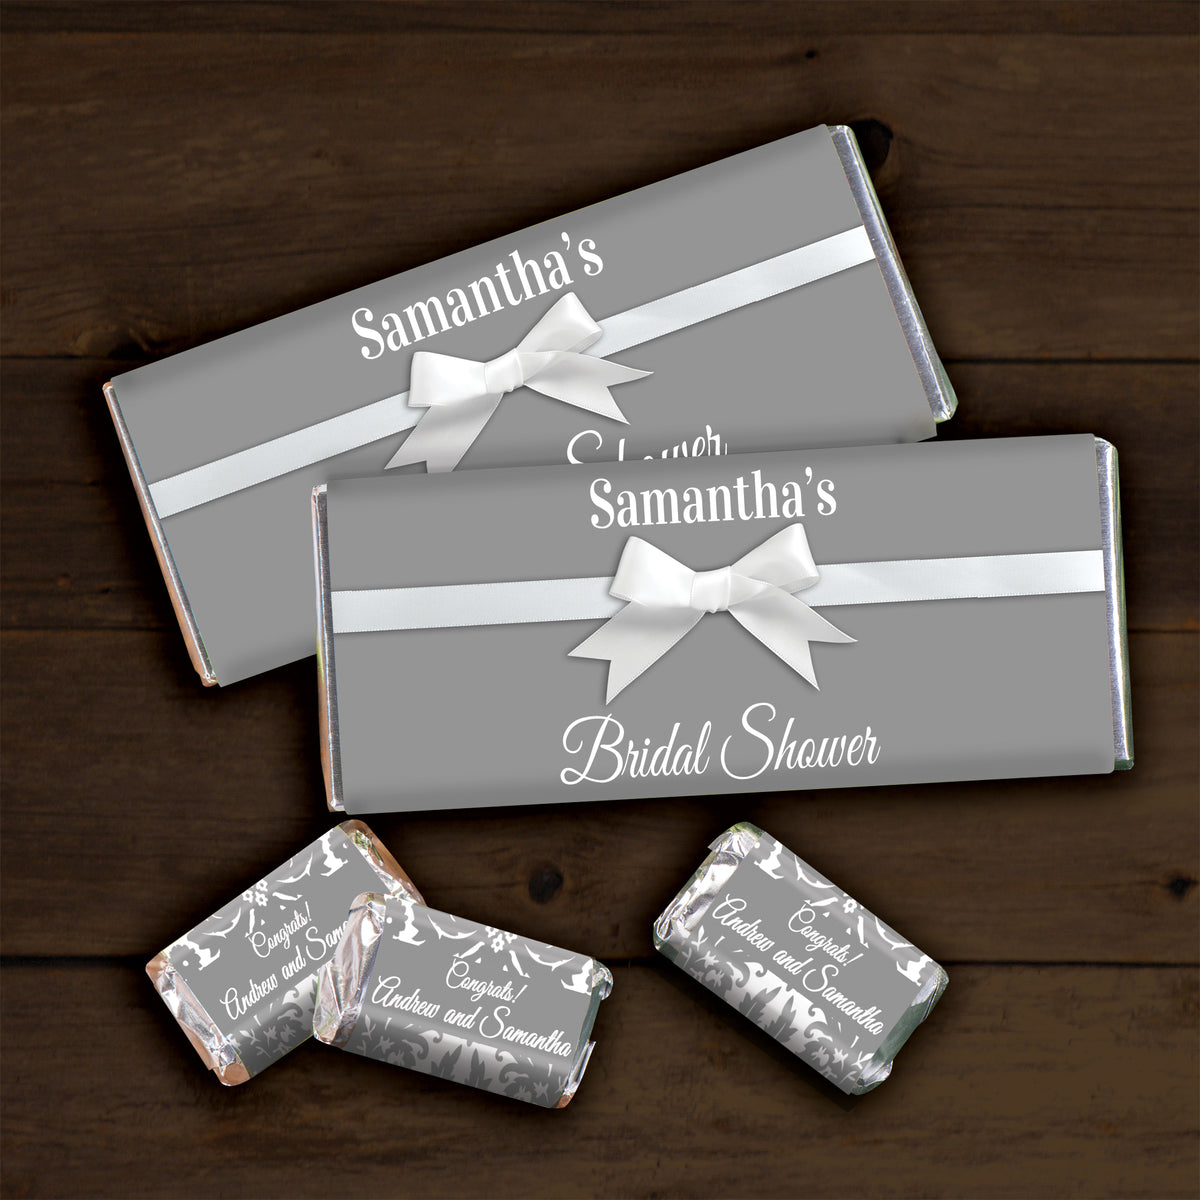 Hershey's Chocolate Sweet & Spooky Personalized Candy Bars